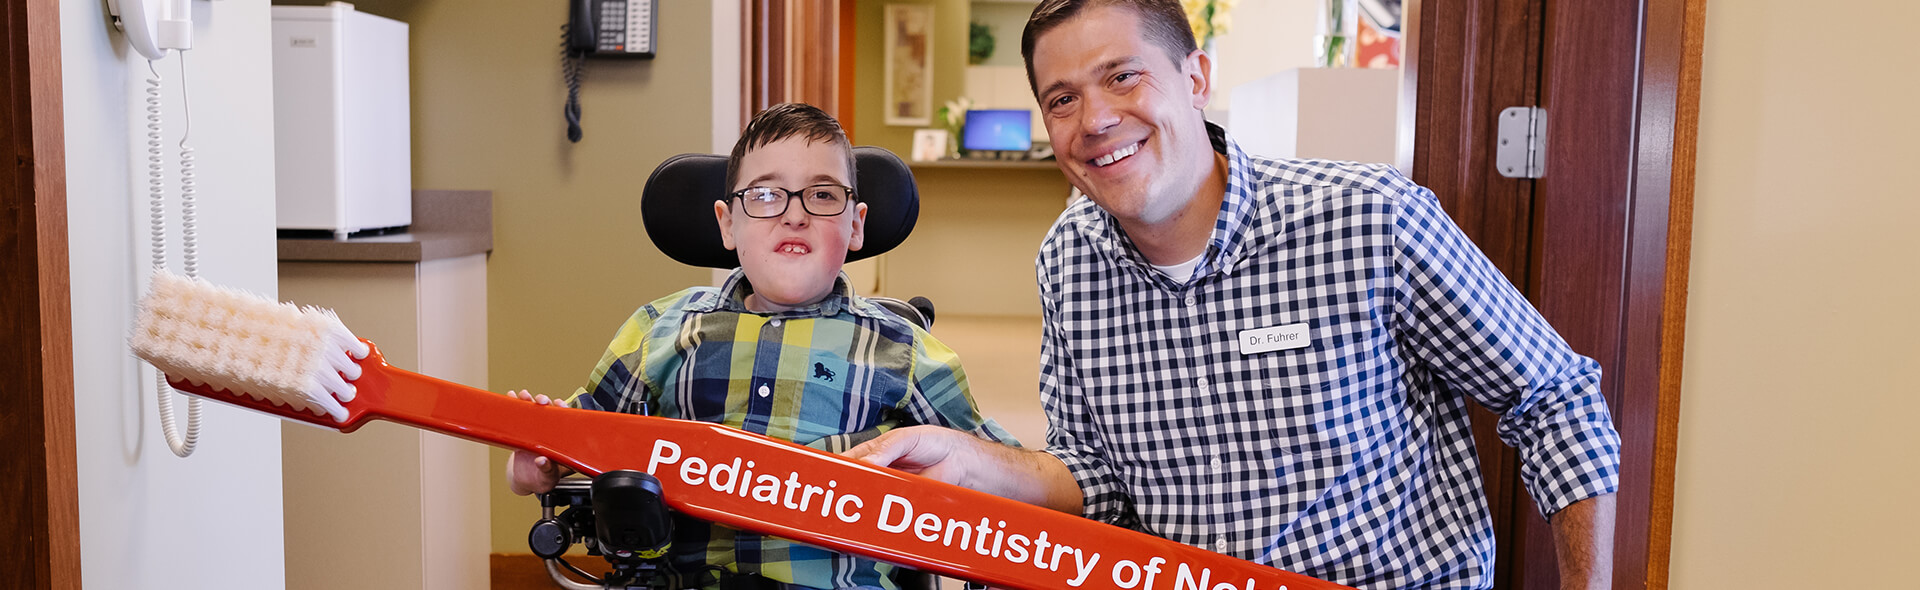 We care for our patients - Pediatric Dentist in Noblesville, IN